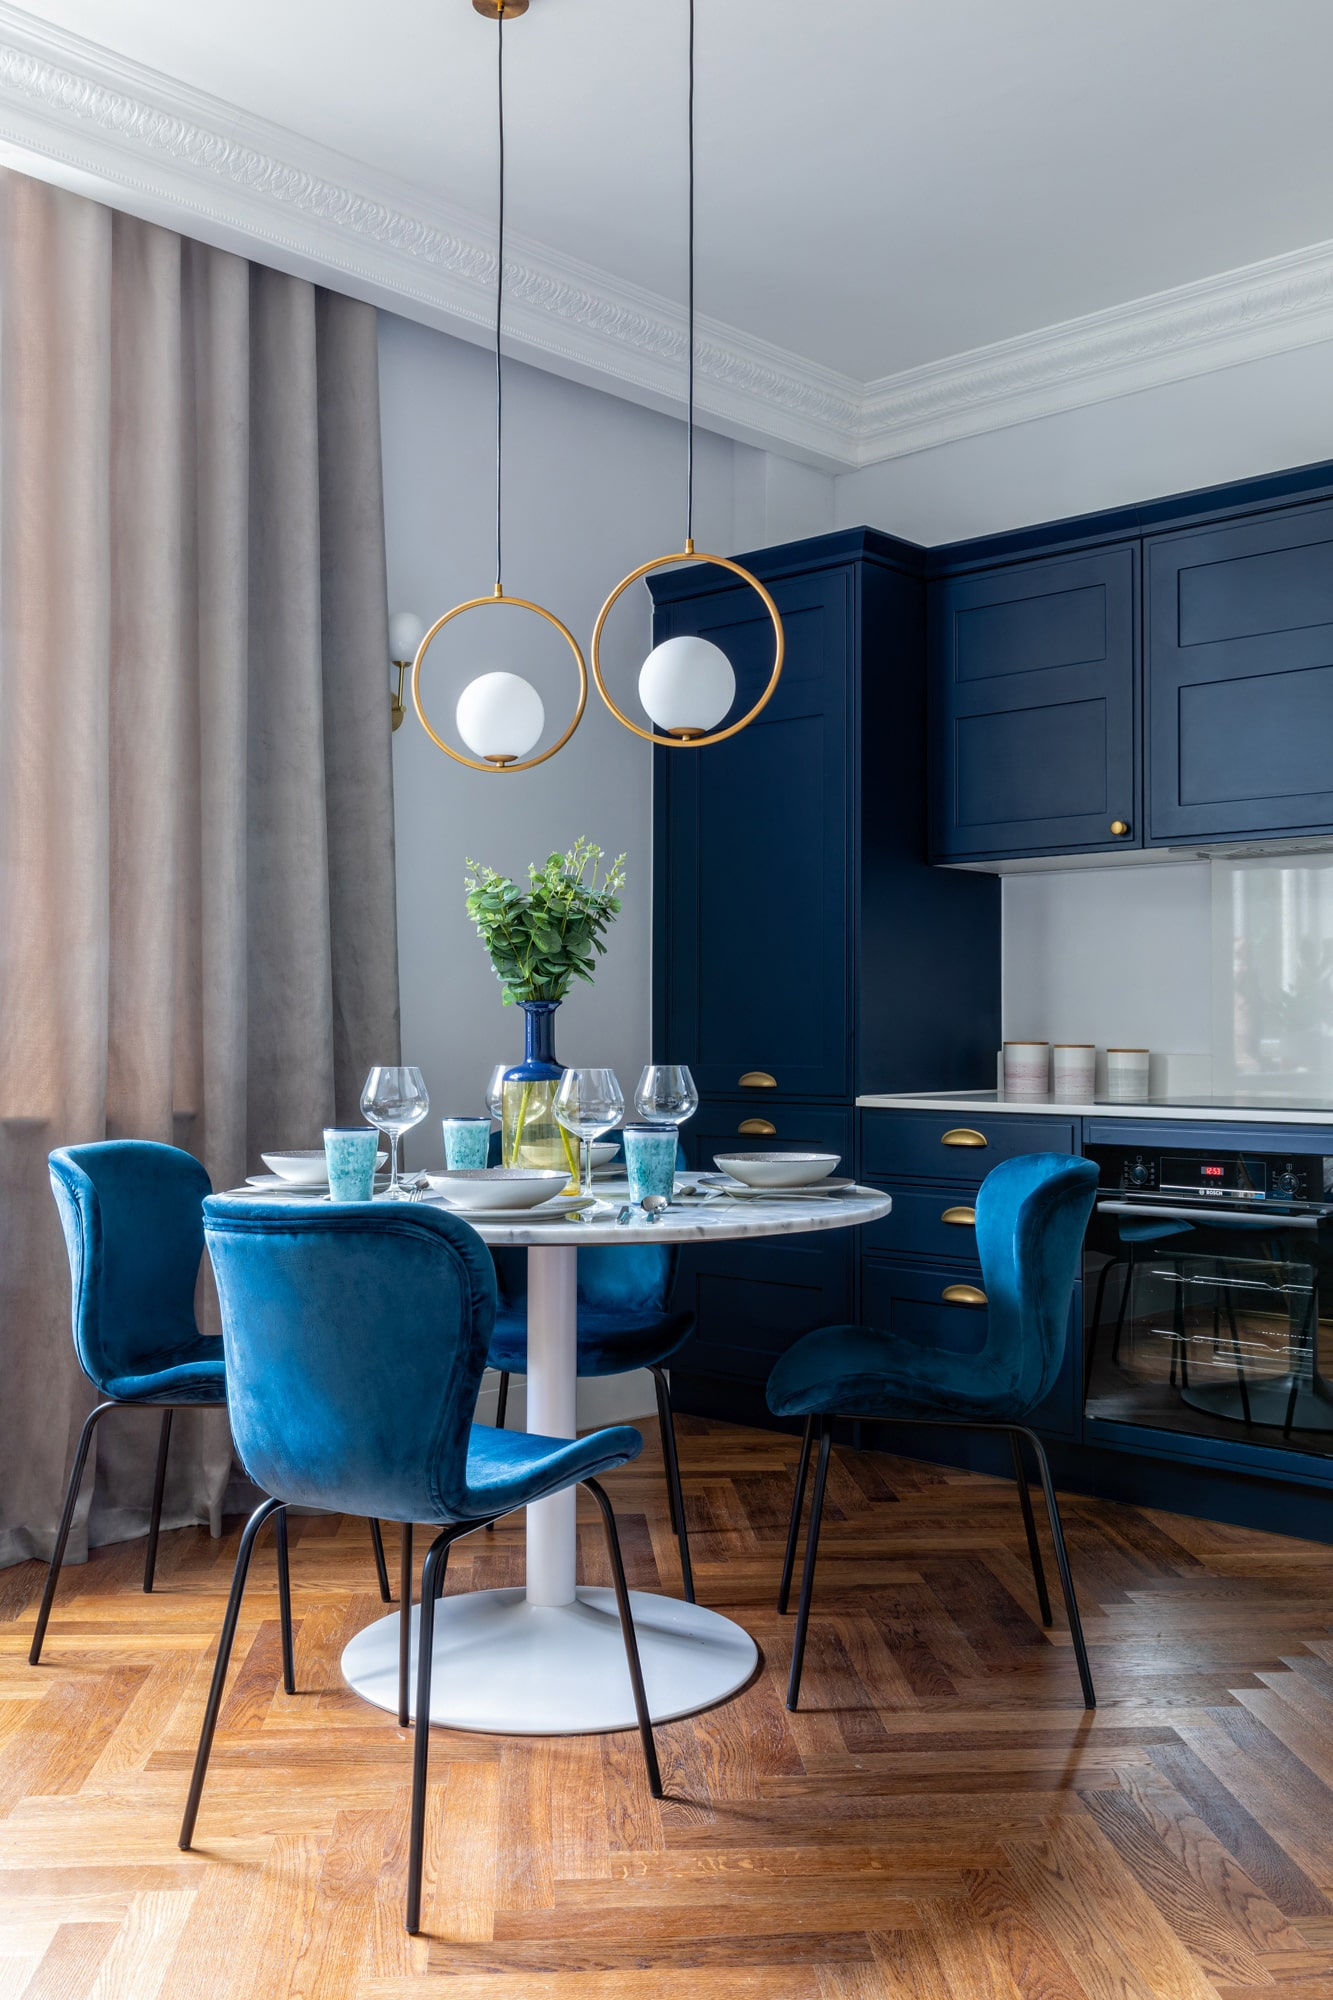 Interior design photograph of a navy blue kitchen, marble table and dark blue velvet chairs